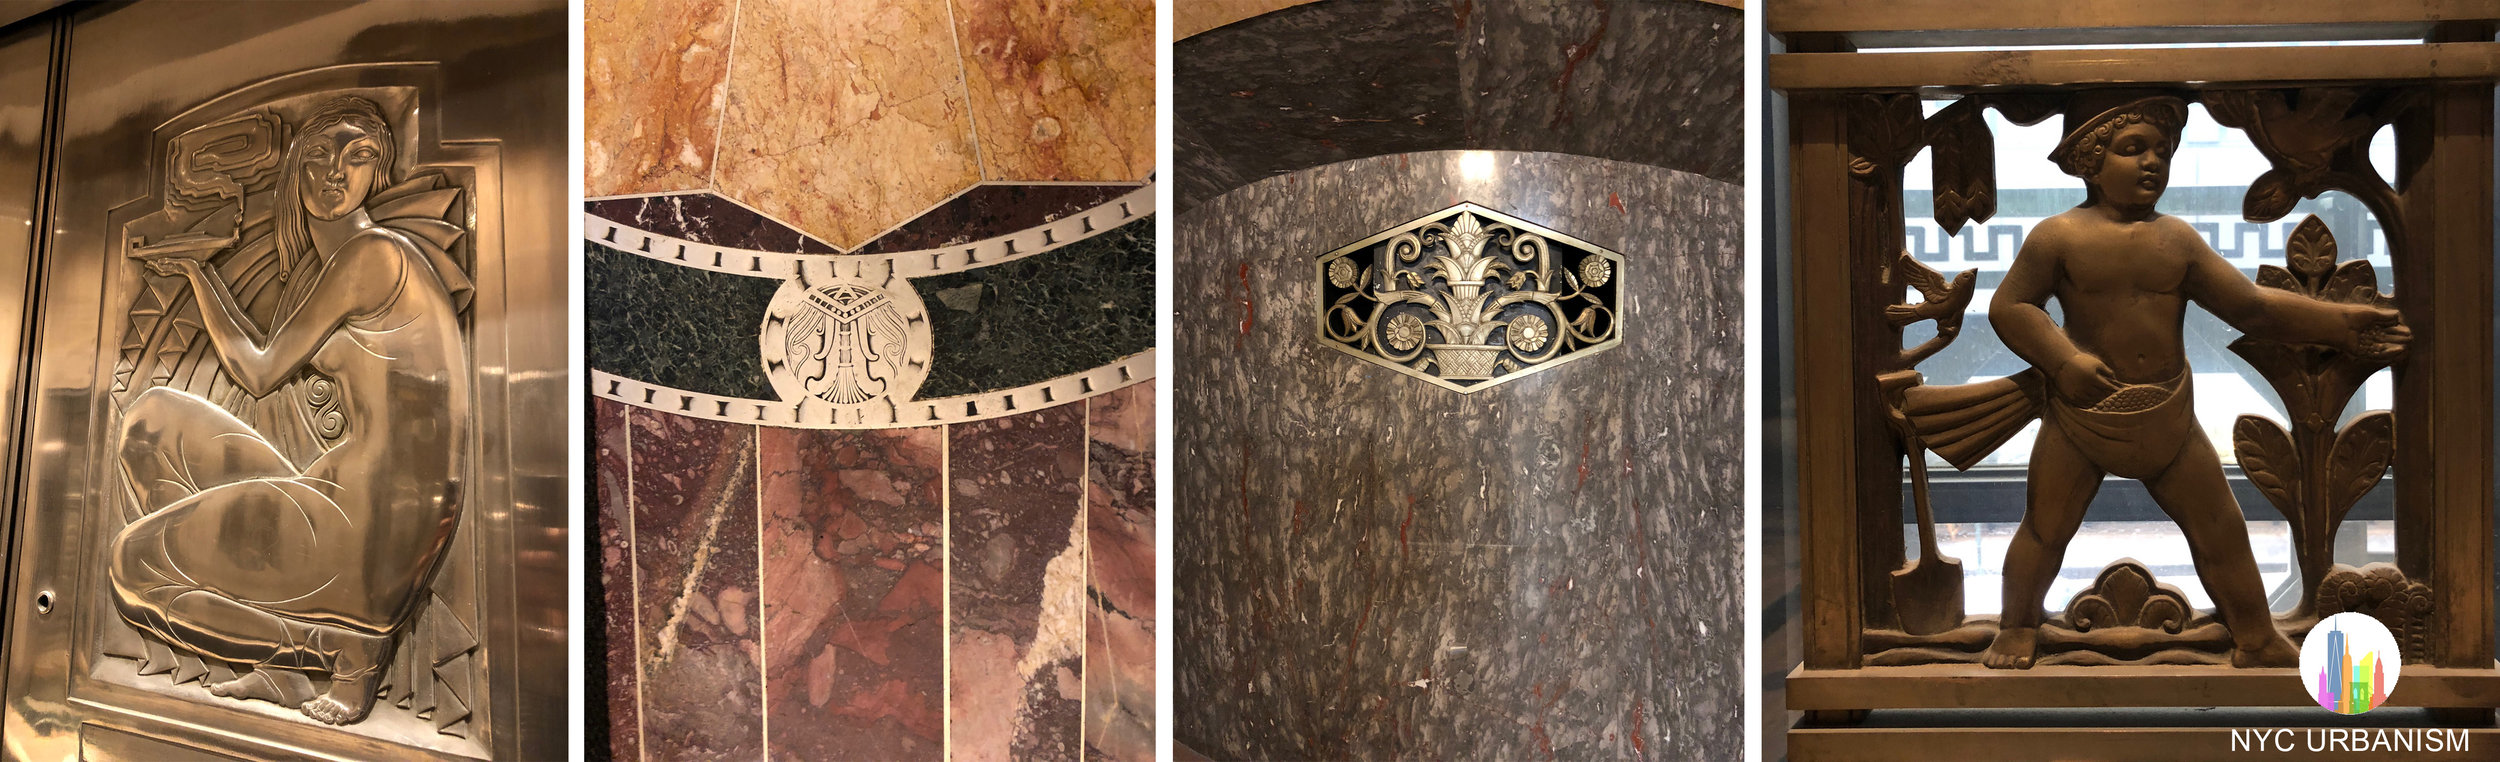 Left: elevator door. Middle left: marble details. Right: babies surrounding the windows in the senior offices depict various scenes.